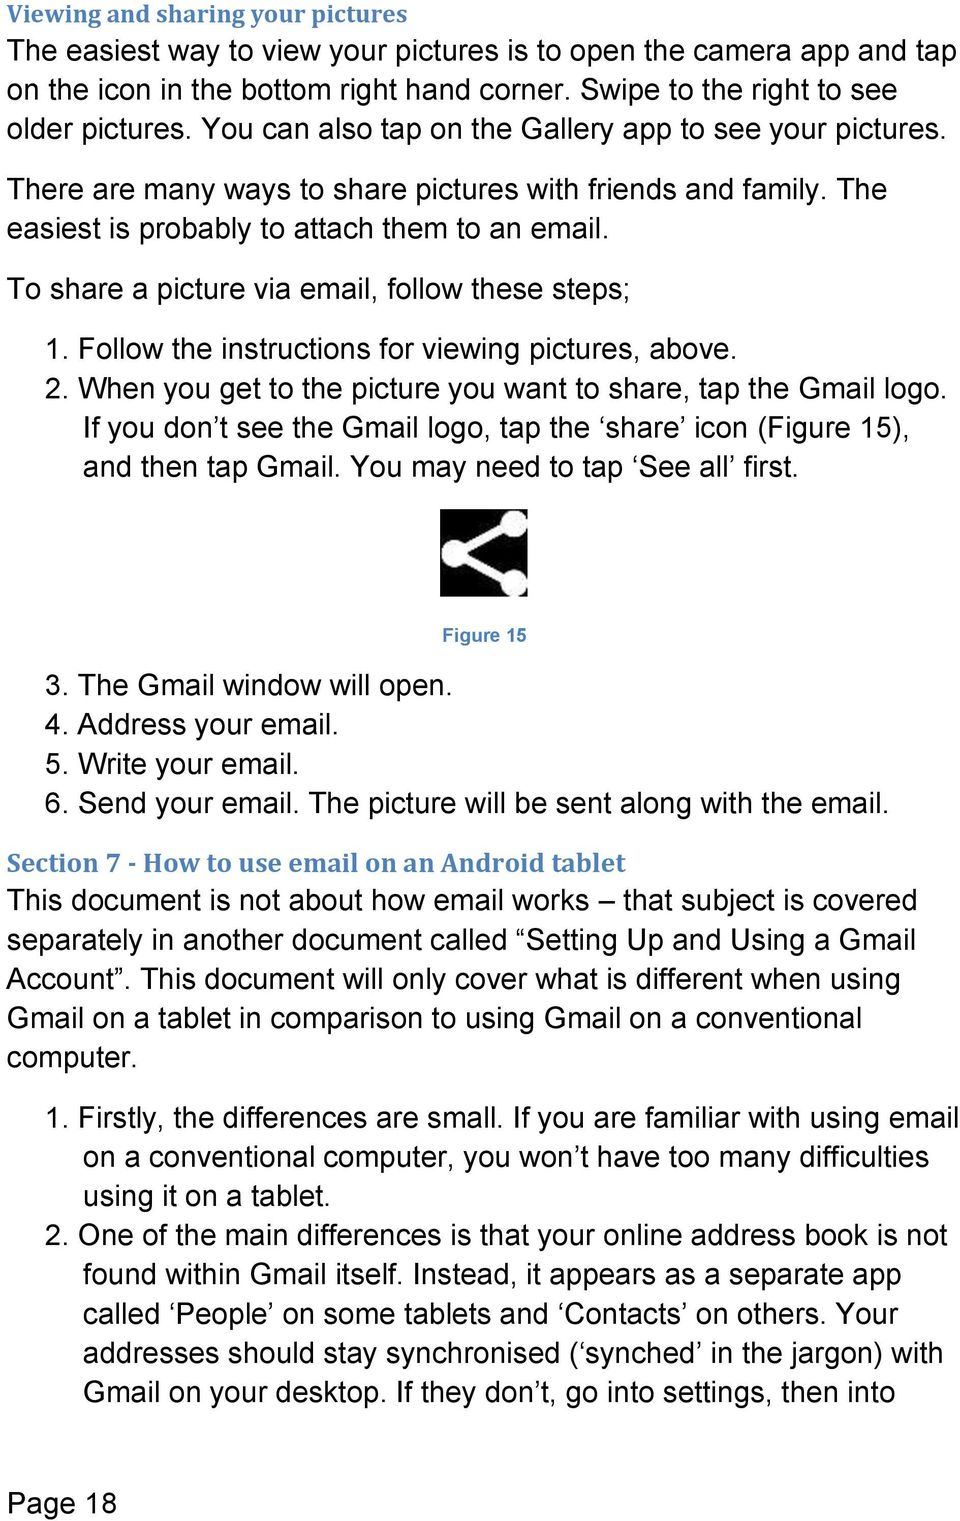 To share a picture via email, follow these steps; 1. Follow the instructions for viewing pictures, above. 2. When you get to the picture you want to share, tap the Gmail logo.